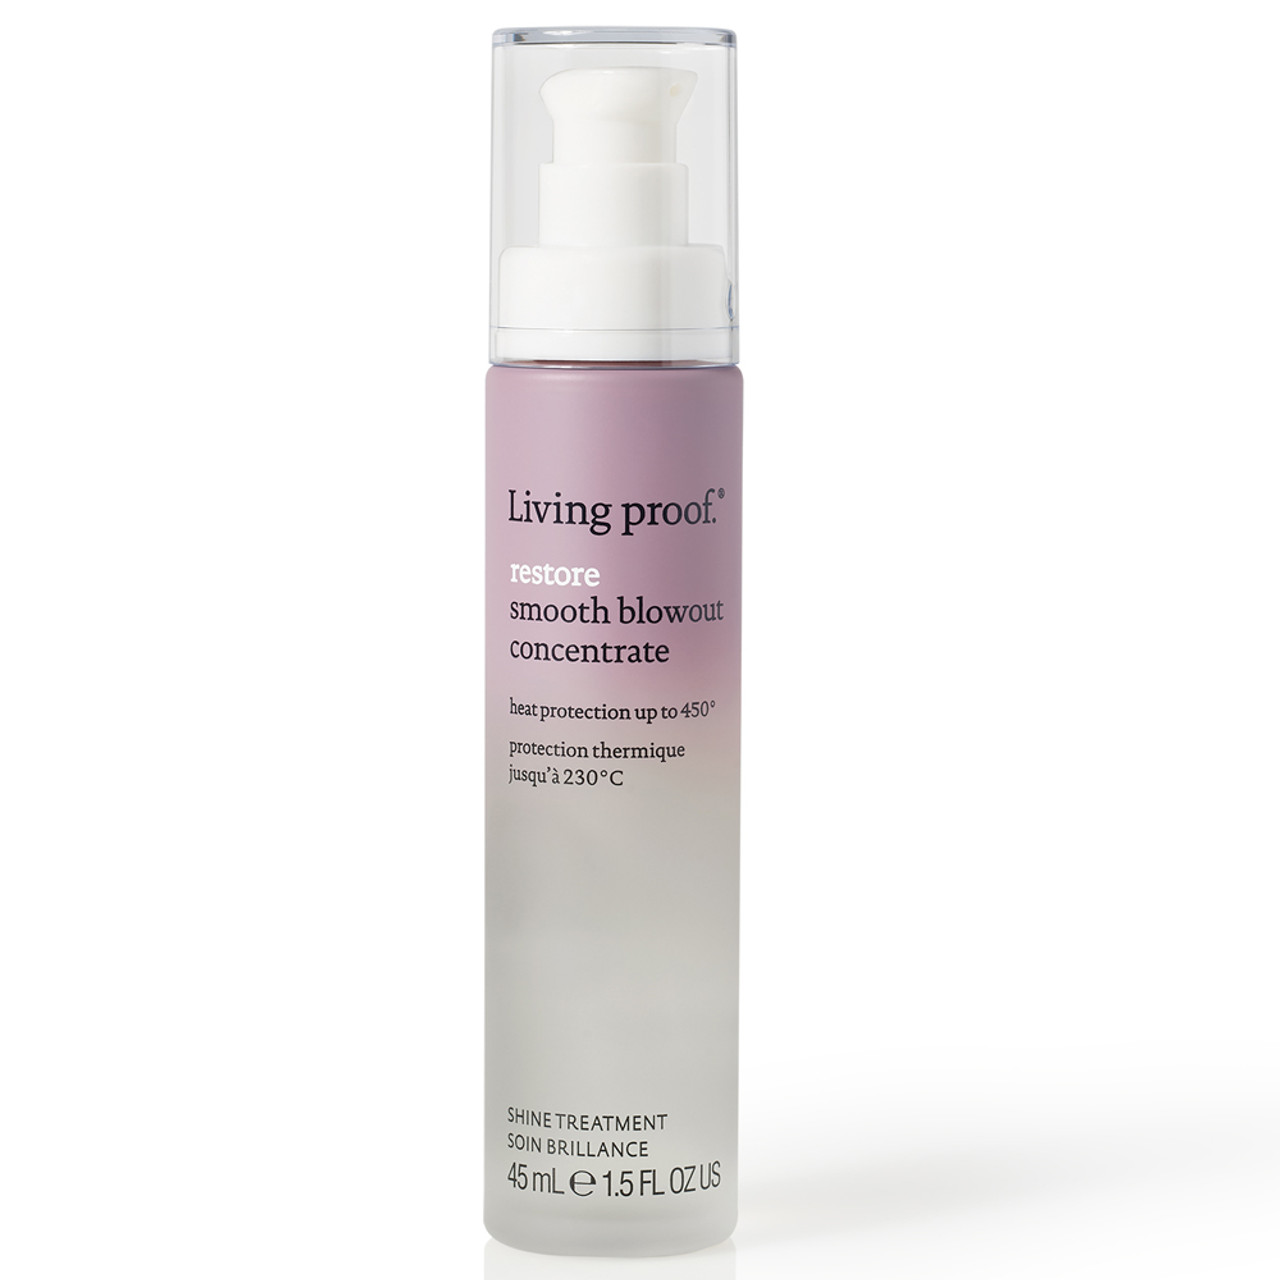 Living Proof Restore Smooth Blowout Concentrate BeautifiedYou.com